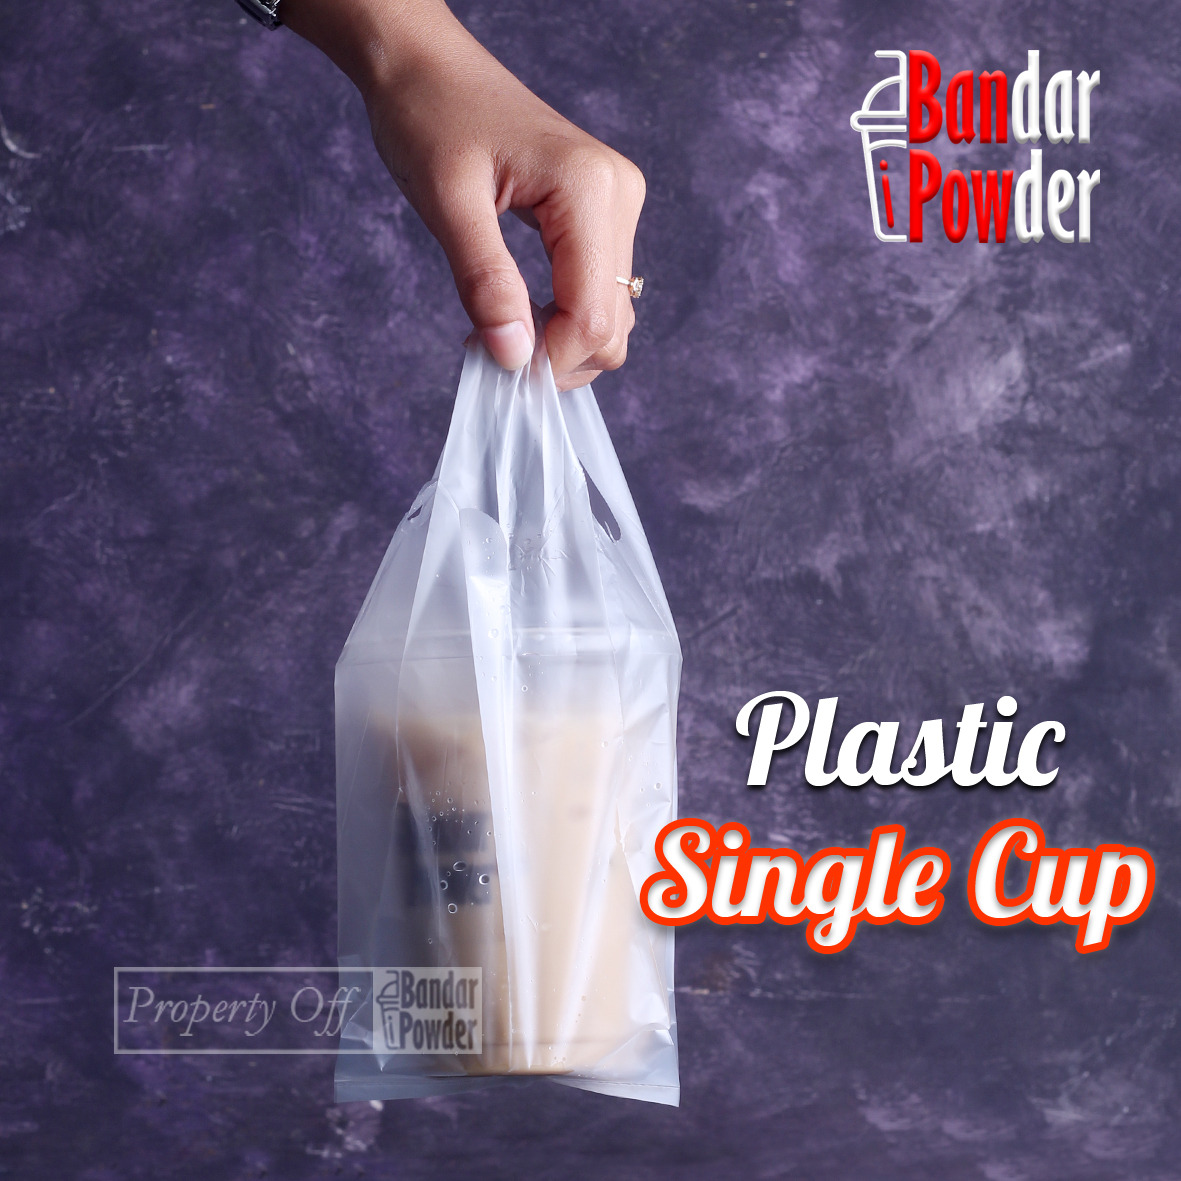 Jual Plastik Single Cup